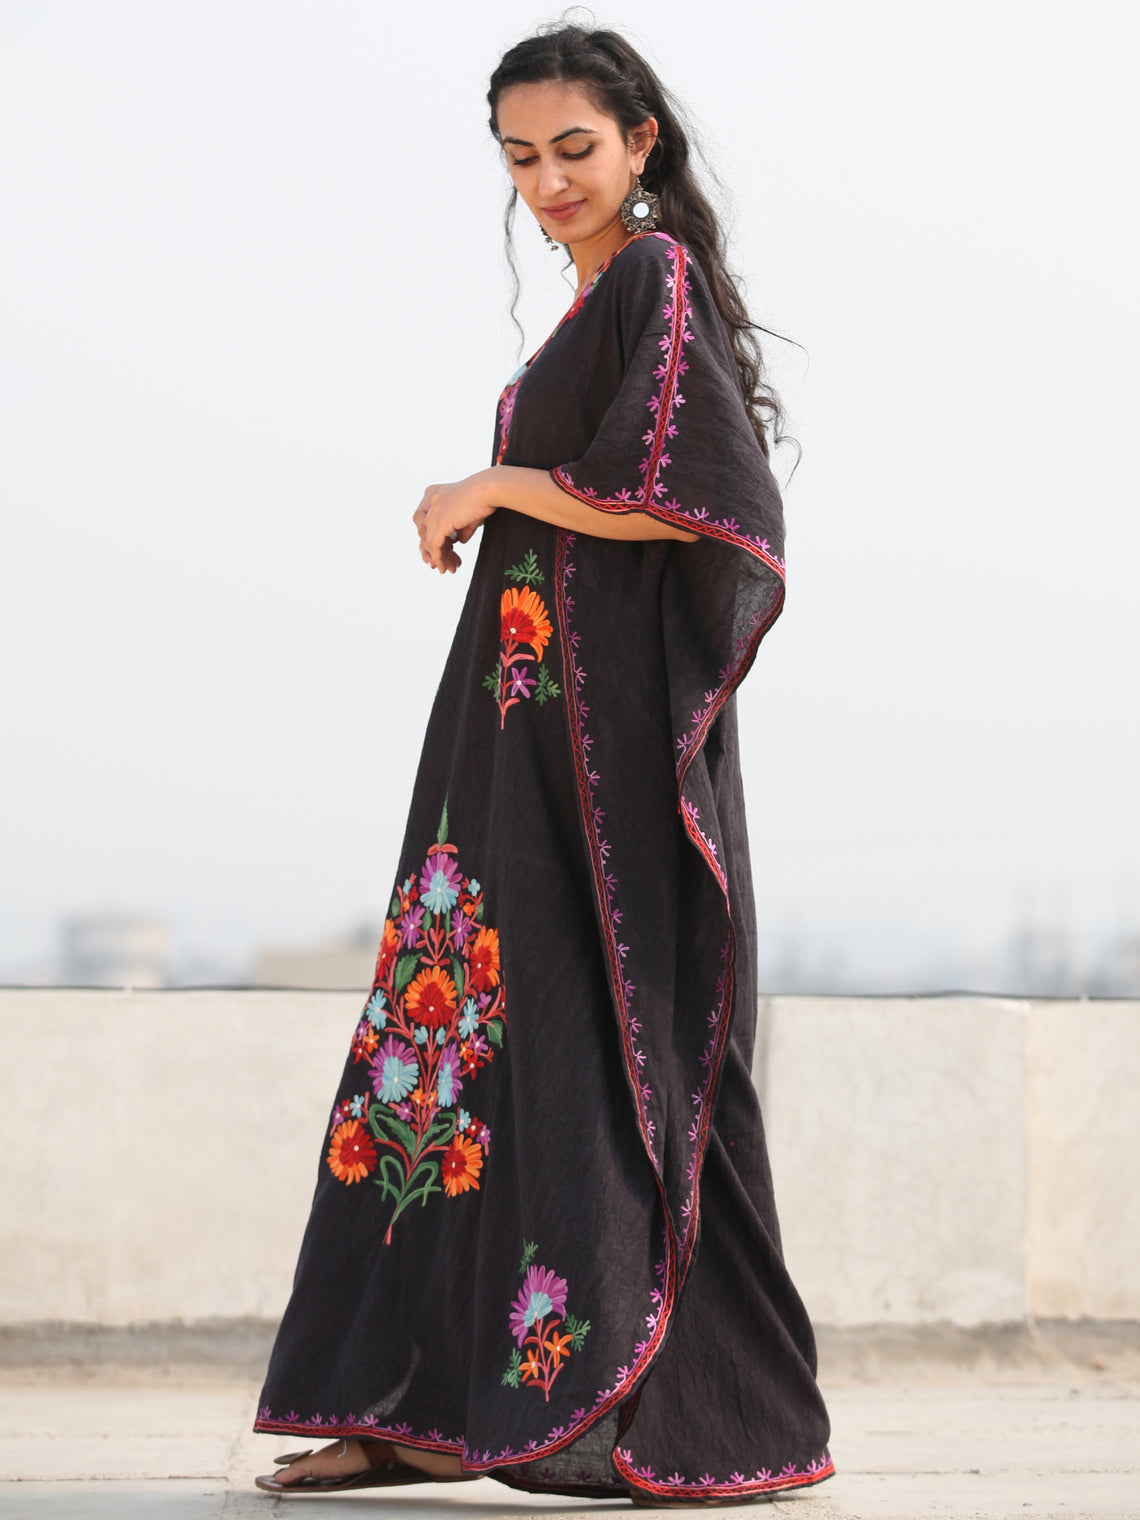 Black MultiColor Aari Embroidered Kashmere Free Size Kaftan in Crushed Cotton - K11K077